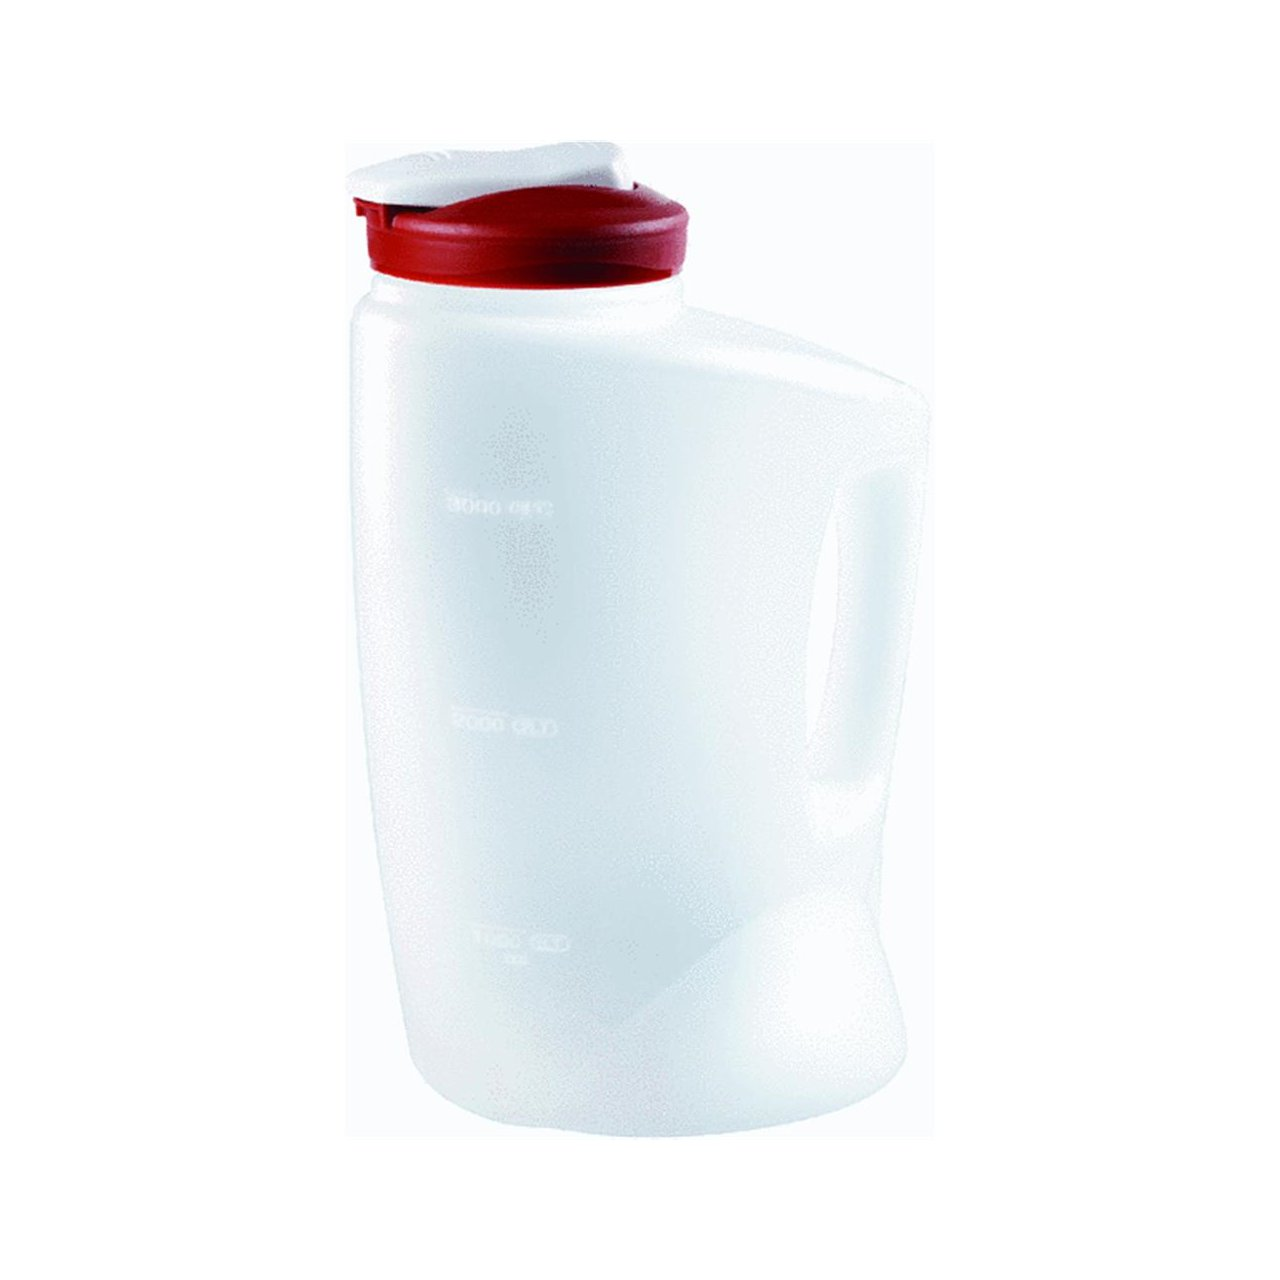 Rubbermaid 7E60 1-Gallon Pitcher (Red) 1776502